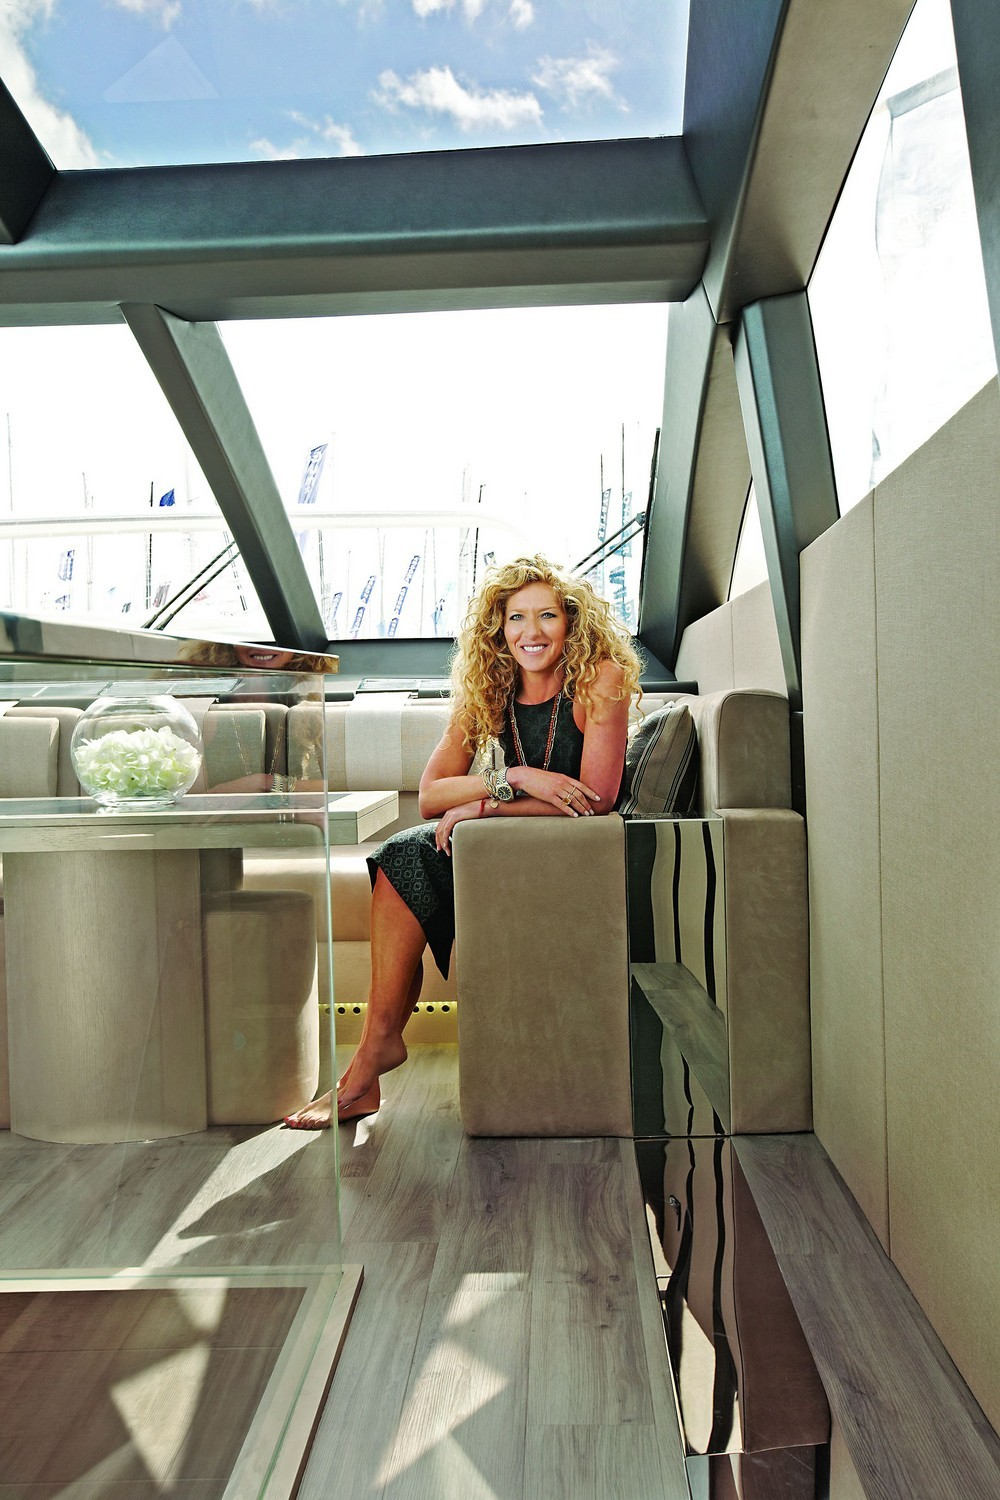 Recollect 4 Striking Luxury Yachts Interiors Decorated by Kelly Hoppen 1 luxury yacht interiors Recollect 4 Striking Luxury Yacht Interiors Decorated by Kelly Hoppen Recollect 4 Striking Luxury Yachts Interiors Decorated by Kelly Hoppen 1